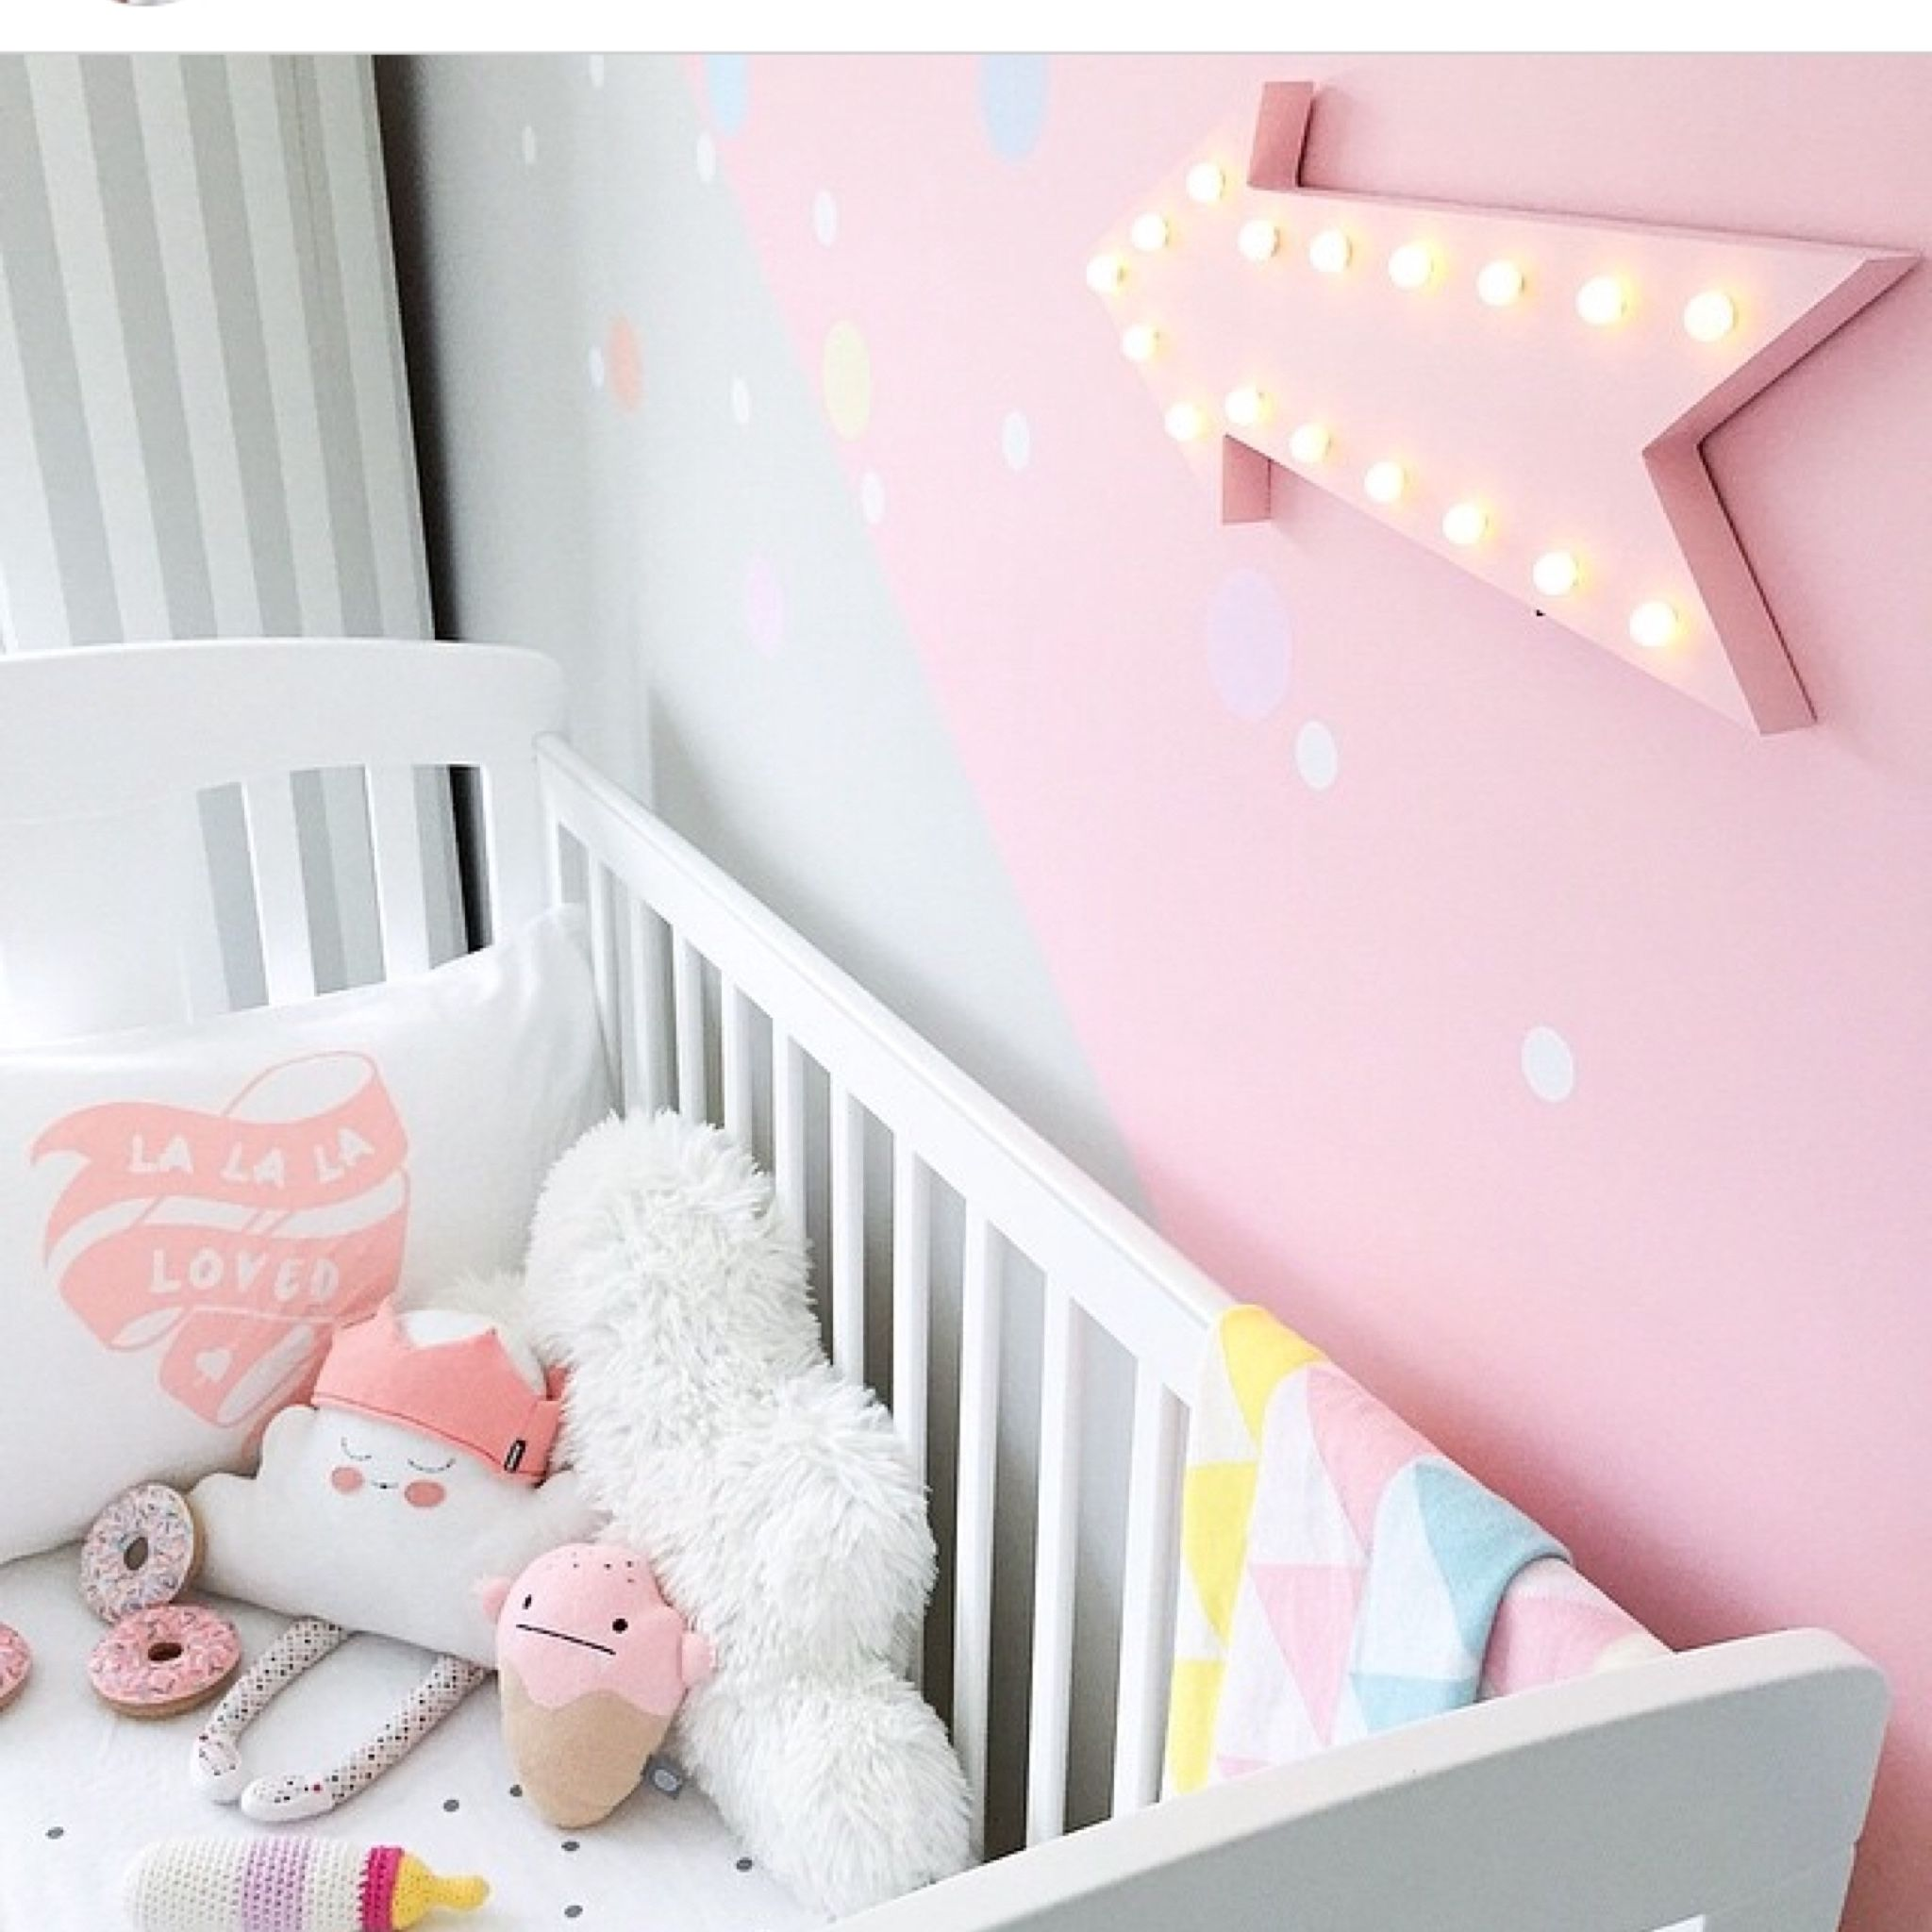 Youth Bedroom Ideas And Trends You Must Try: Kmart Hacks, Baby Girl Wallpaper, Kids Bedroom